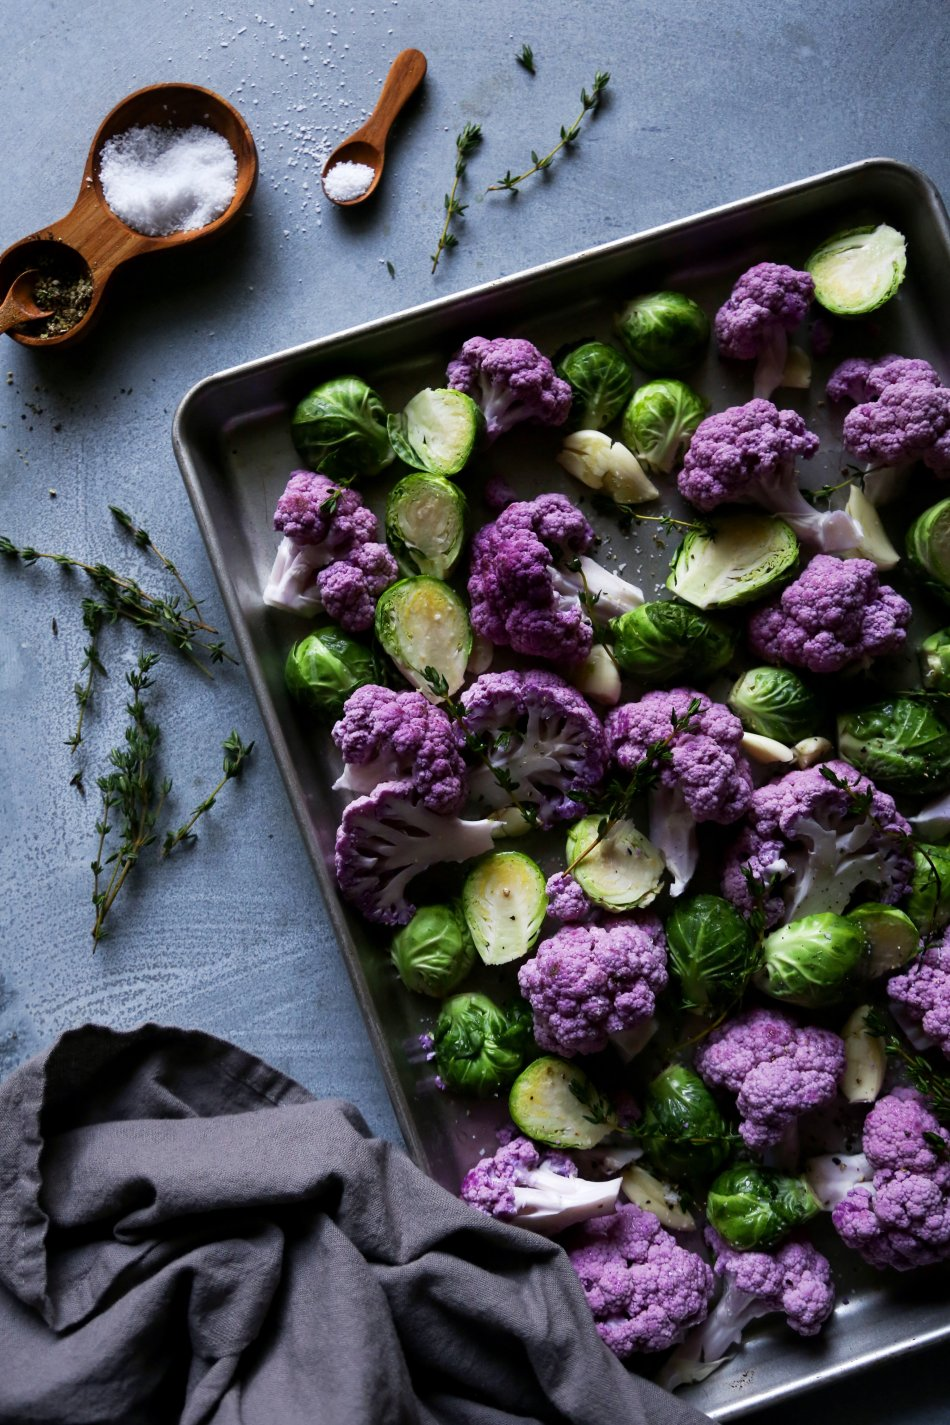 Roasted Cauliflower & Brussel Sprouts | Gluten & grain free side. Vegan/paleo friendly